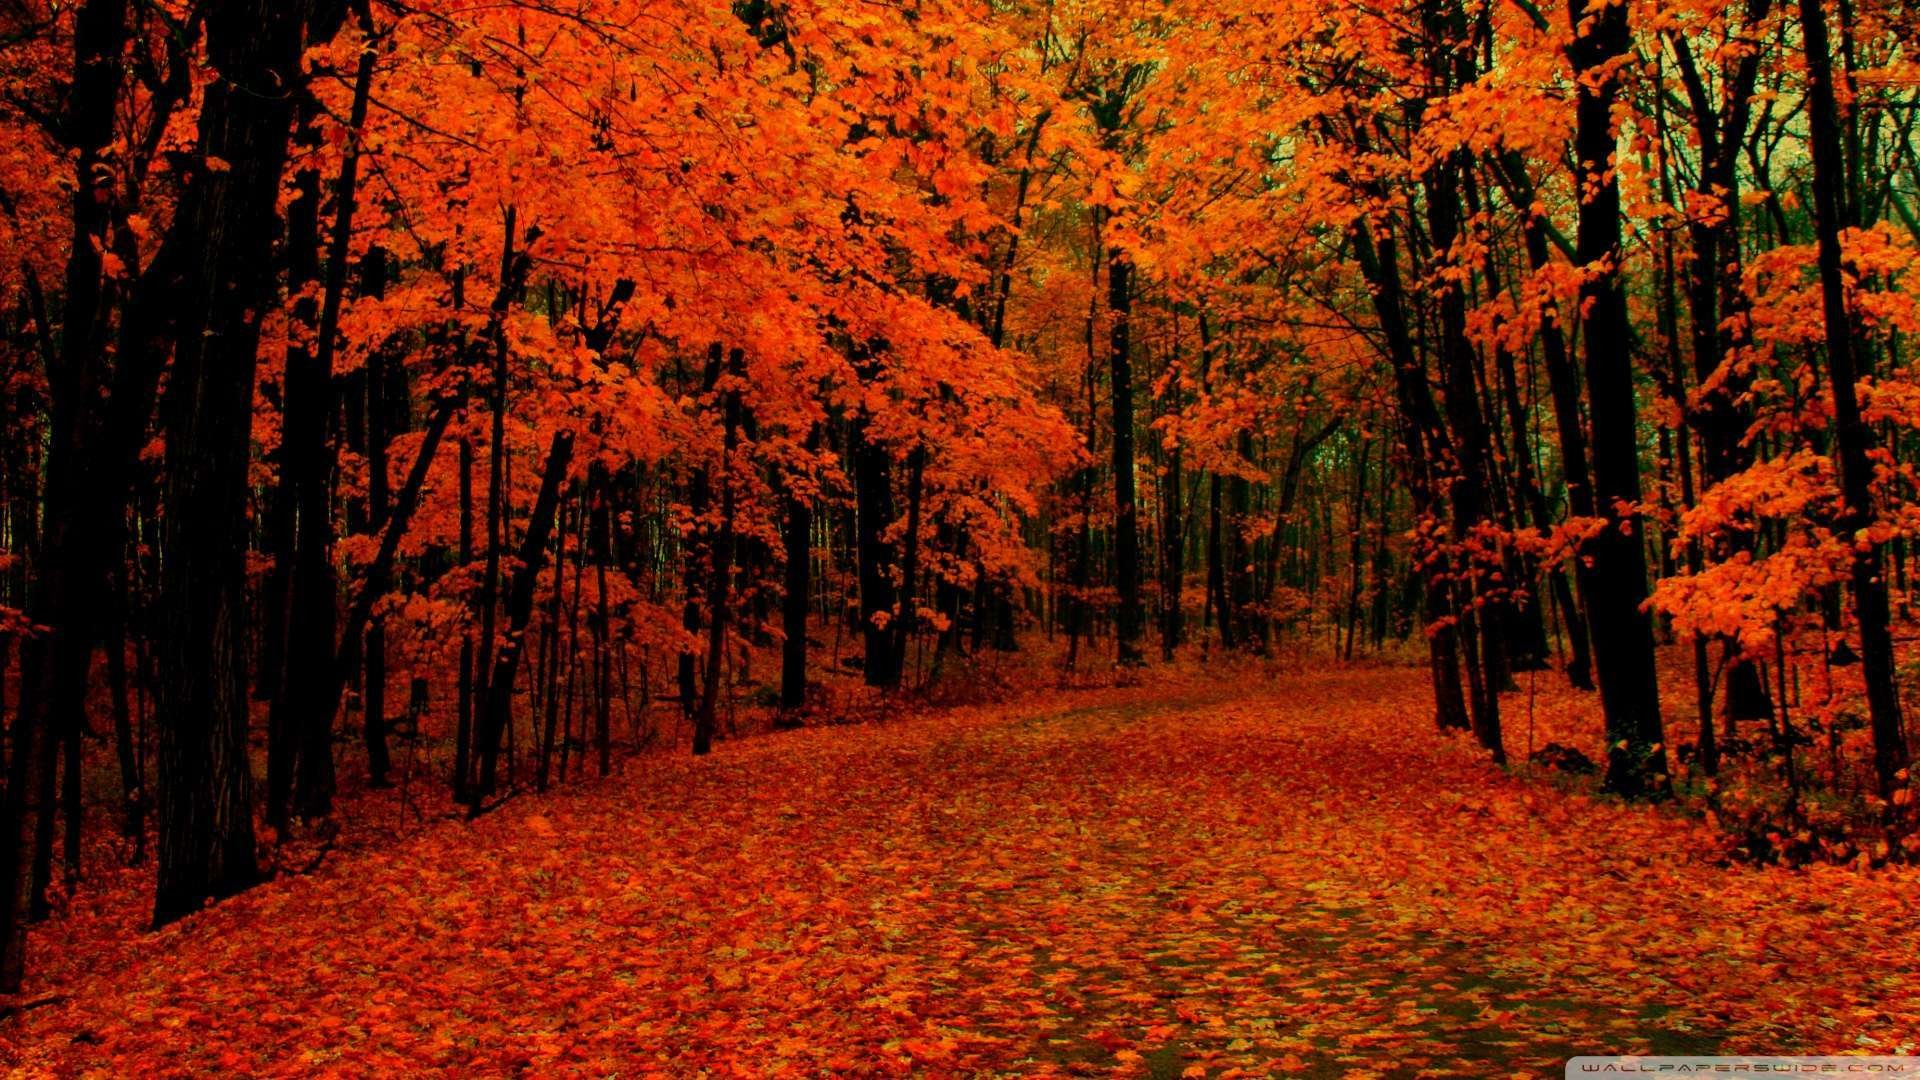 1920x1080 Wallpaper: Fall Path Wallpaper 1080p HD. Upload at February 2, 2014 by .